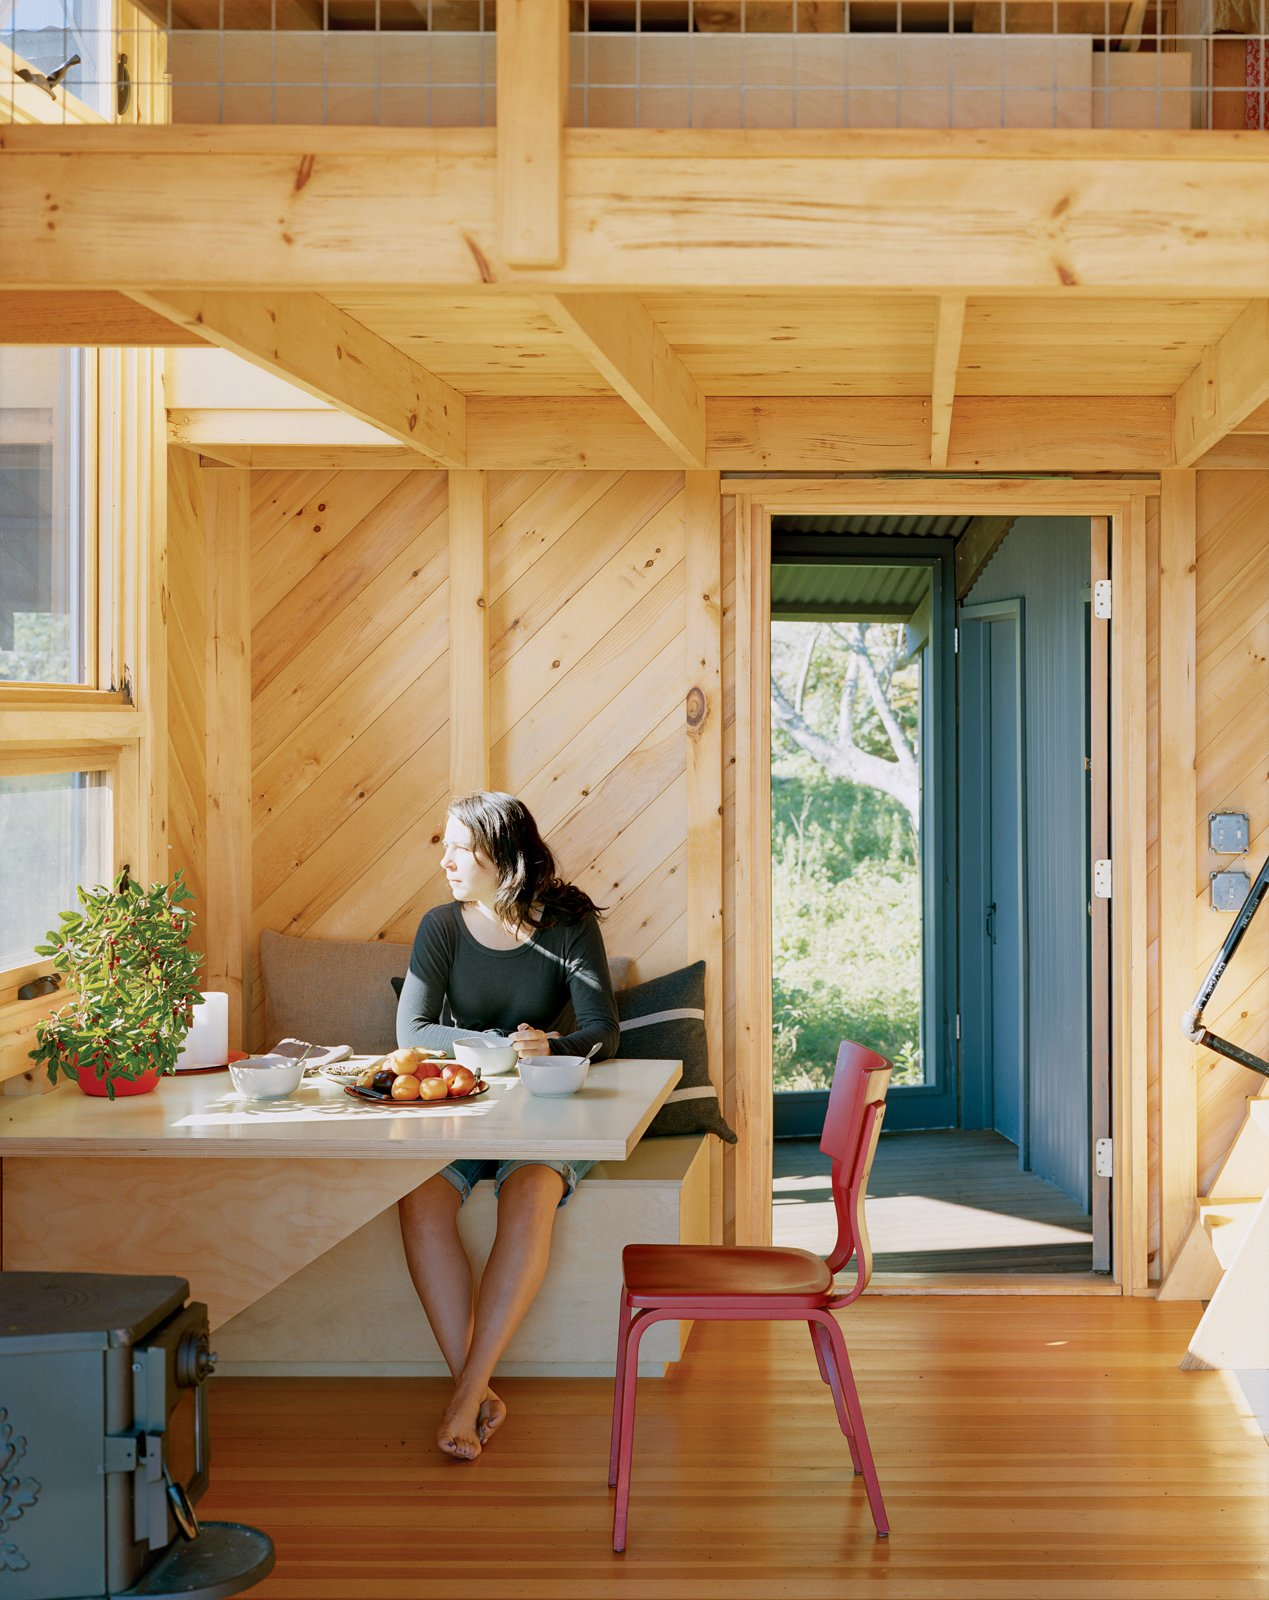 Alex enjoys a sun-filled breakfast at the built-in dining table and bench, one of many space-saving designs. Tagged: Dining Room and Table.  Photo 8 of 21 in A Tiny Cabin is This Writer's Off the Grid Getaway